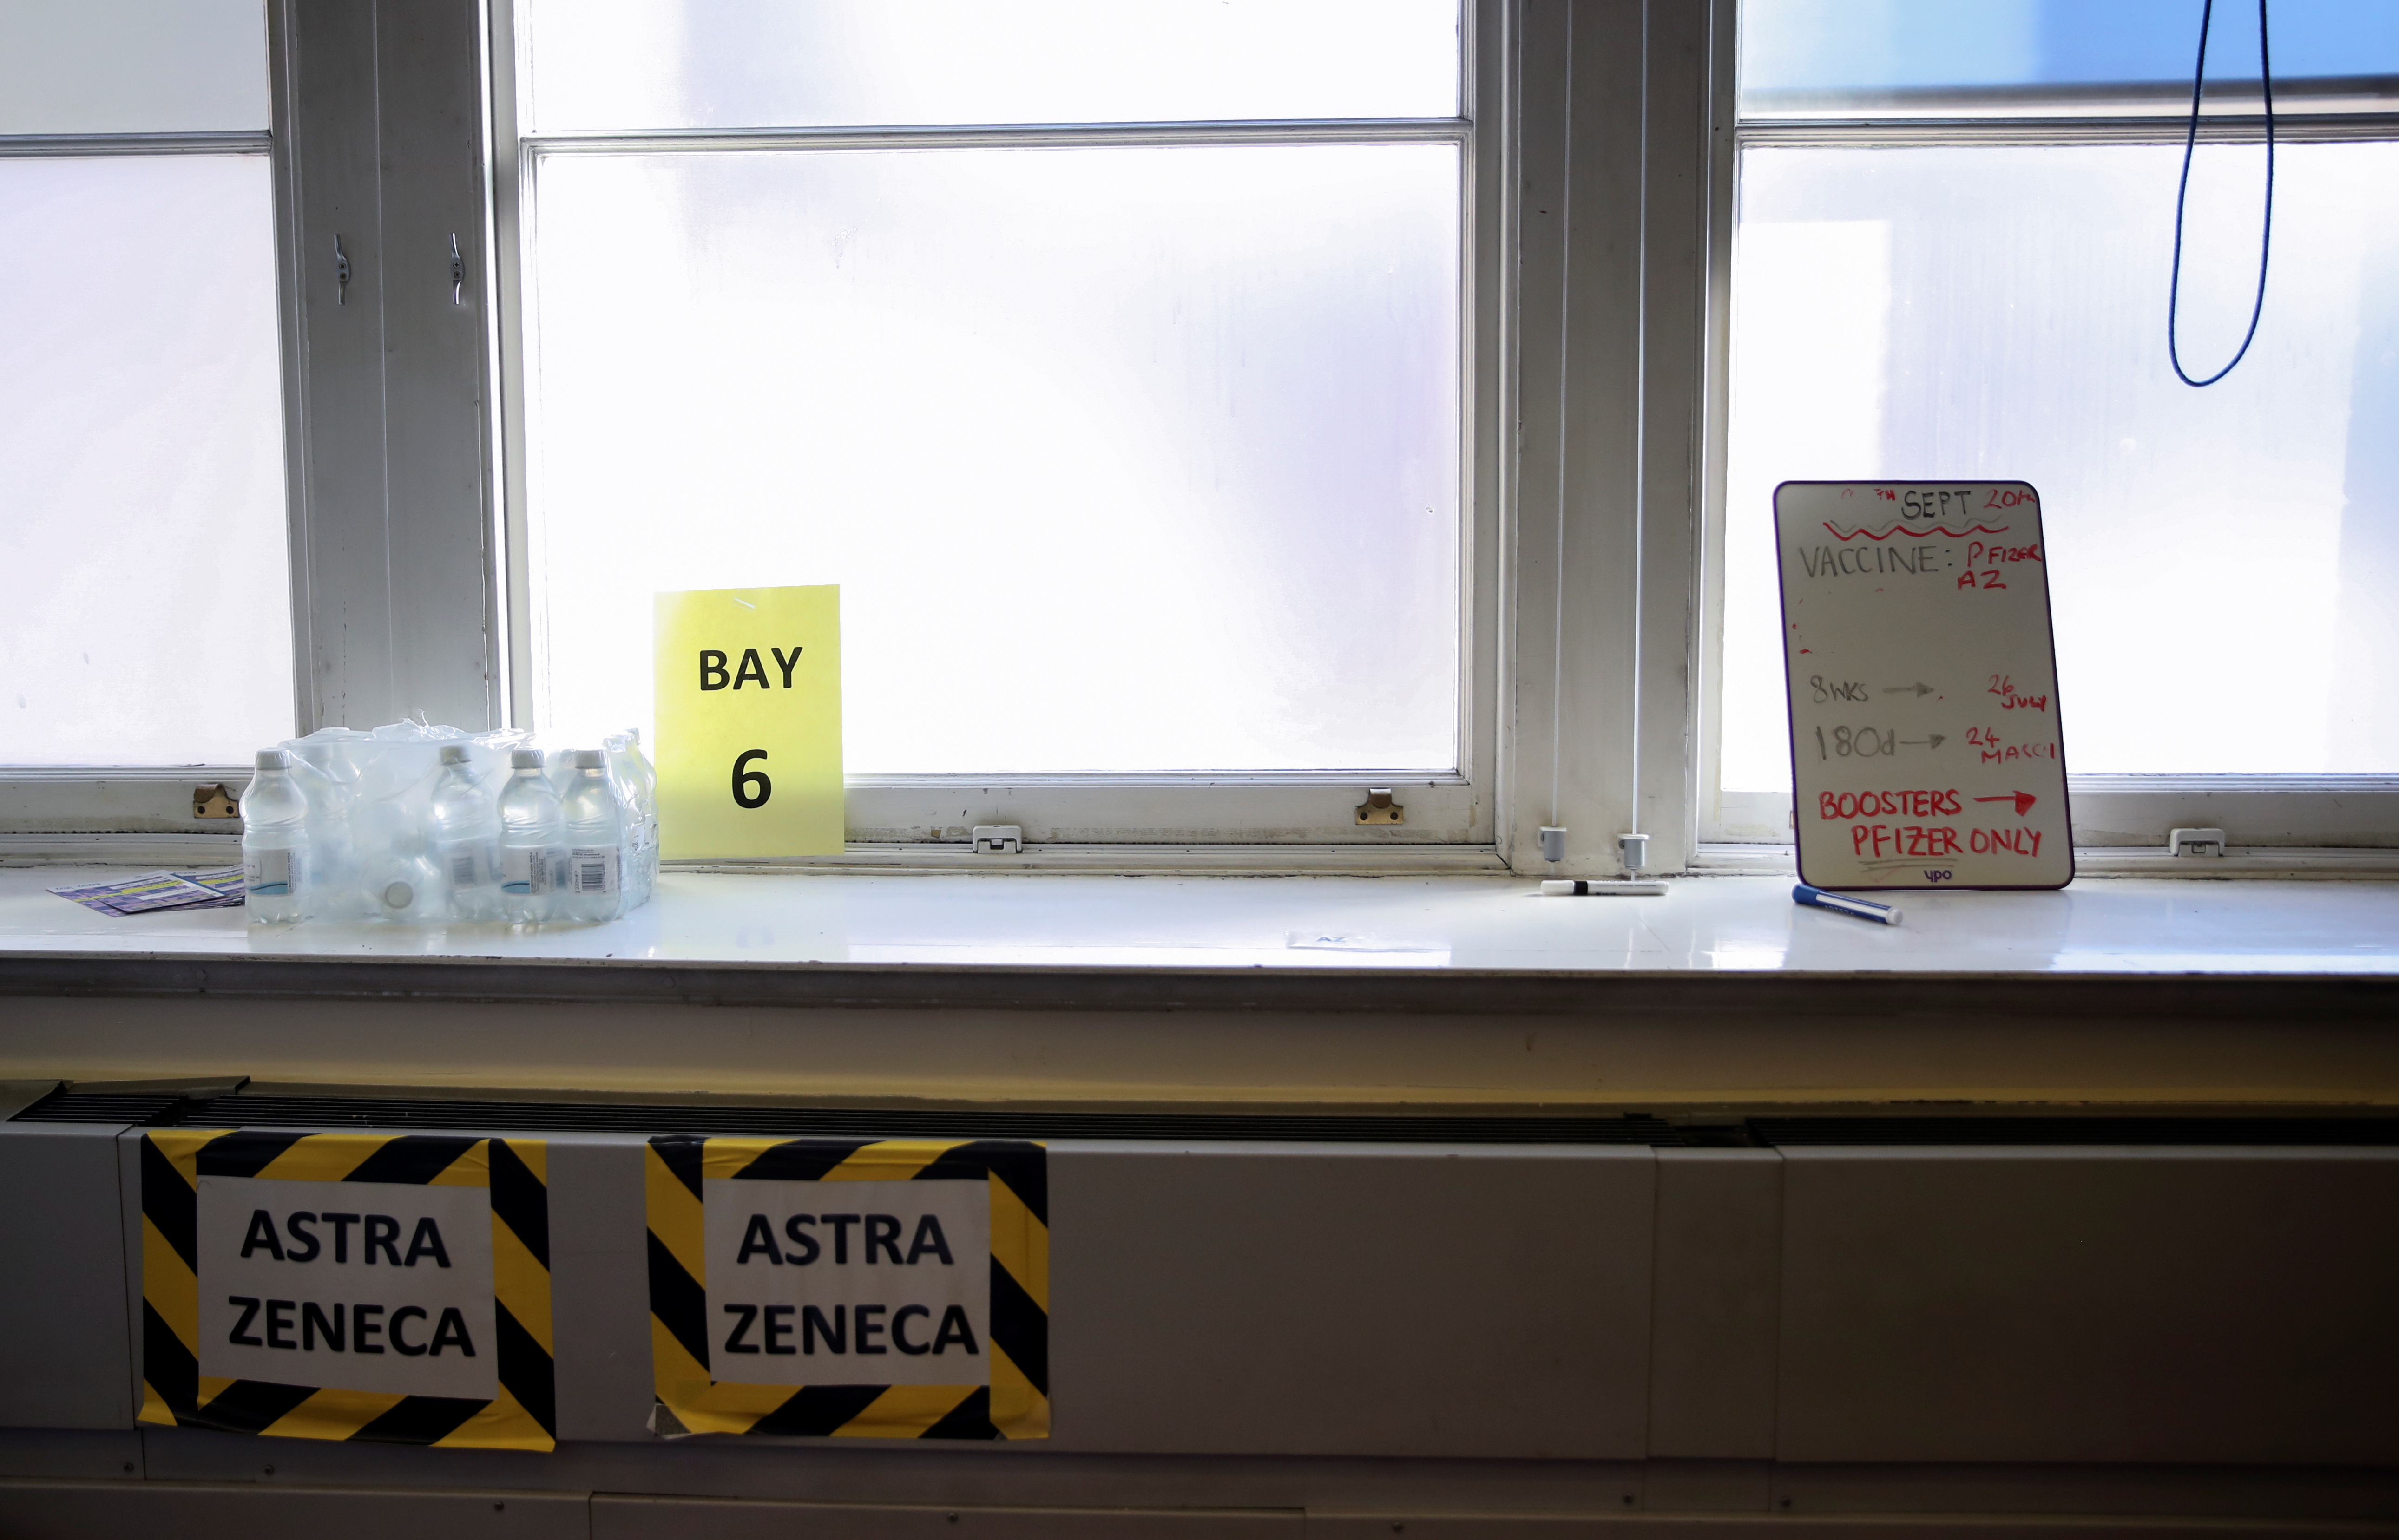 Signs are pictured as healthcare staff receive the COVID-19 booster vaccine, amid the coronavirus disease (COVID-19) pandemic, at Midland House in Derby, Britain, September 20, 2021. REUTERS/Carl Recine